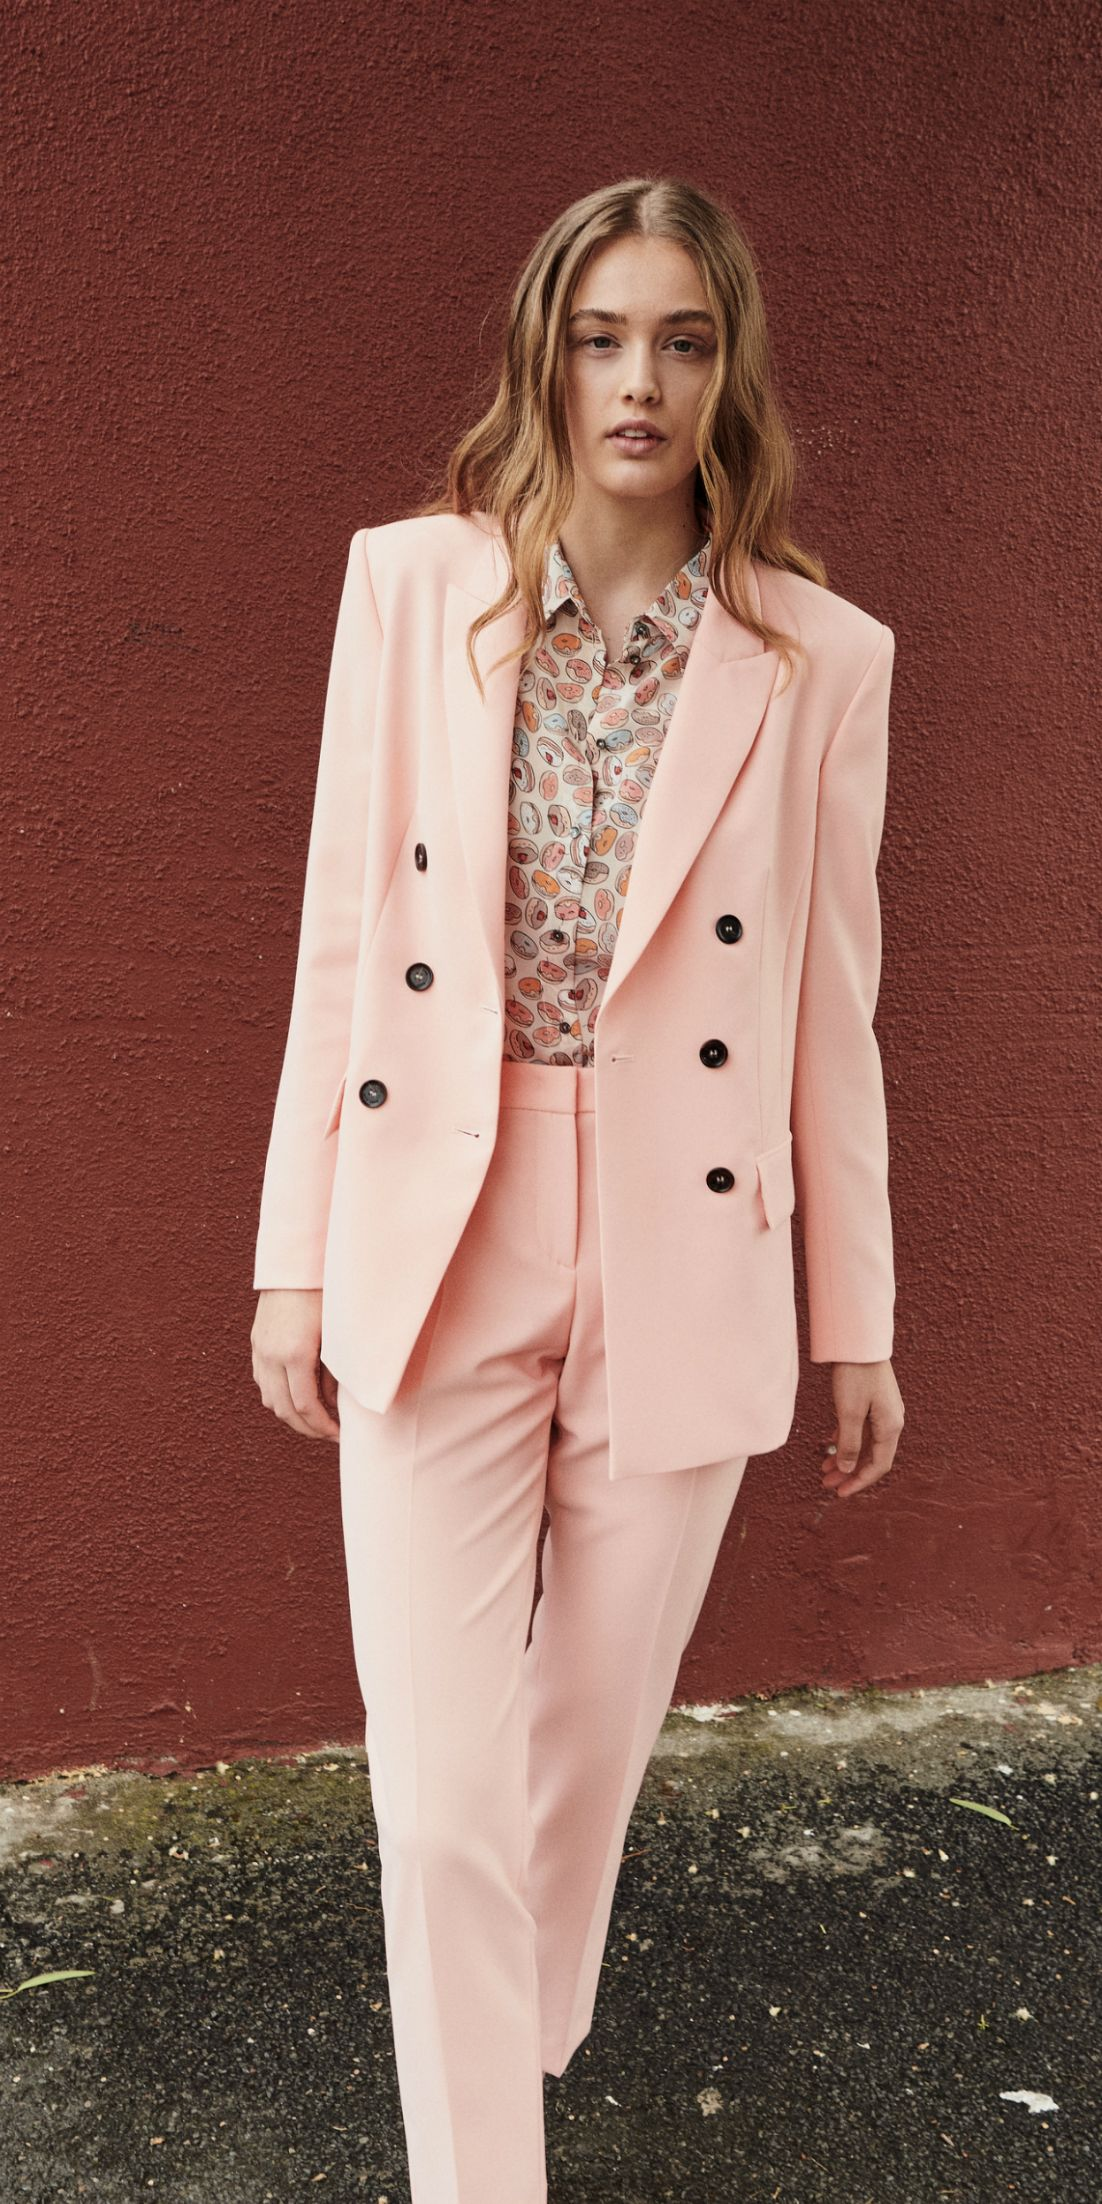 Blazer | Business outfits, Suit jacket, Double breasted suit